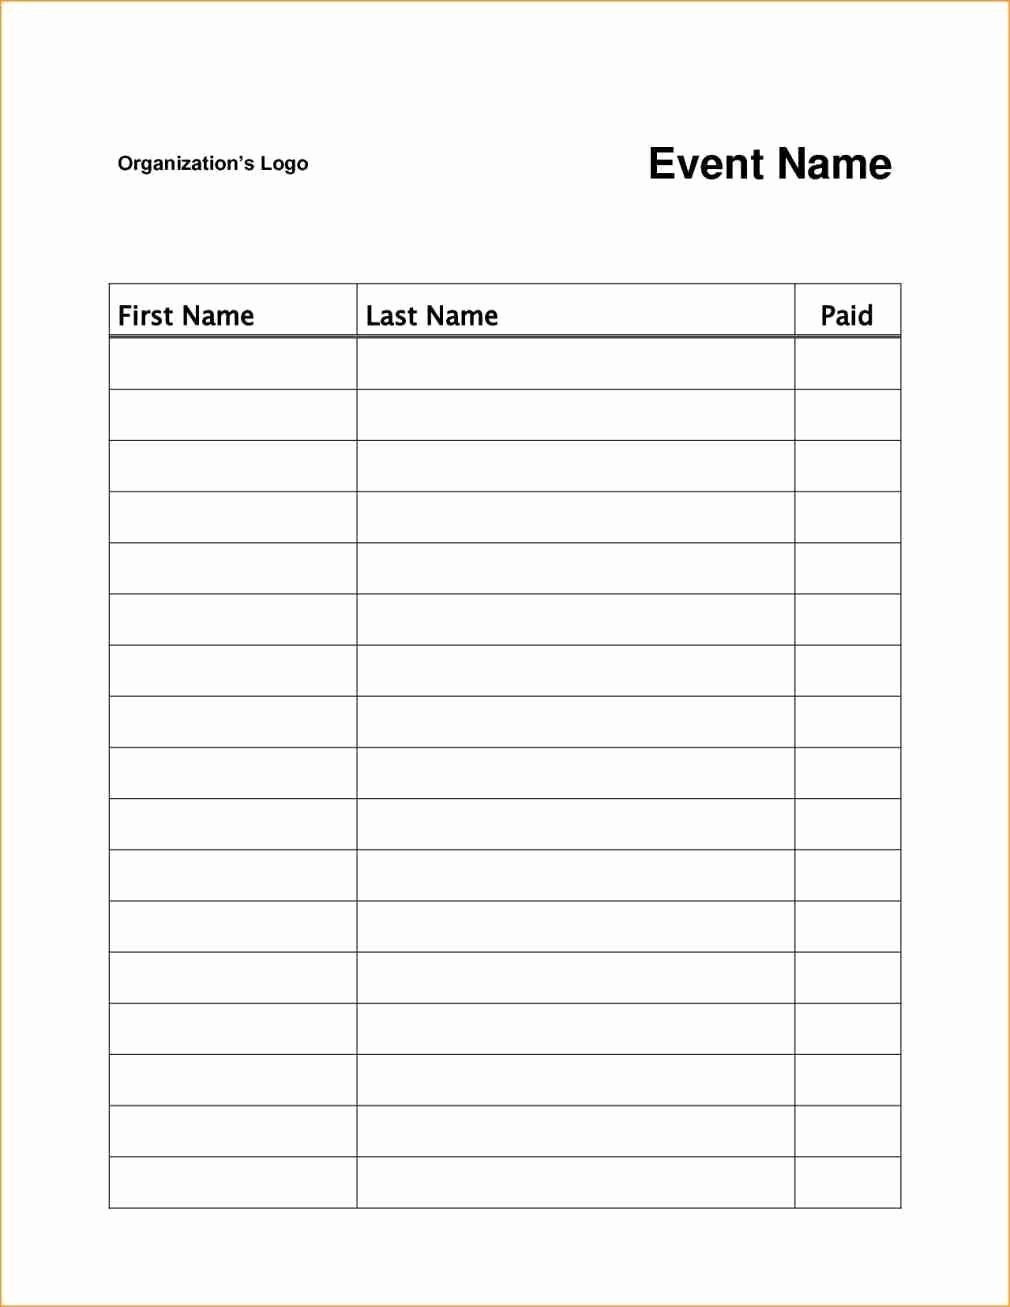 Class Registration form Template Luxury event or Class Workshop forms A Sign Up Sheet Template Word Simple Signup Sheet with Room for